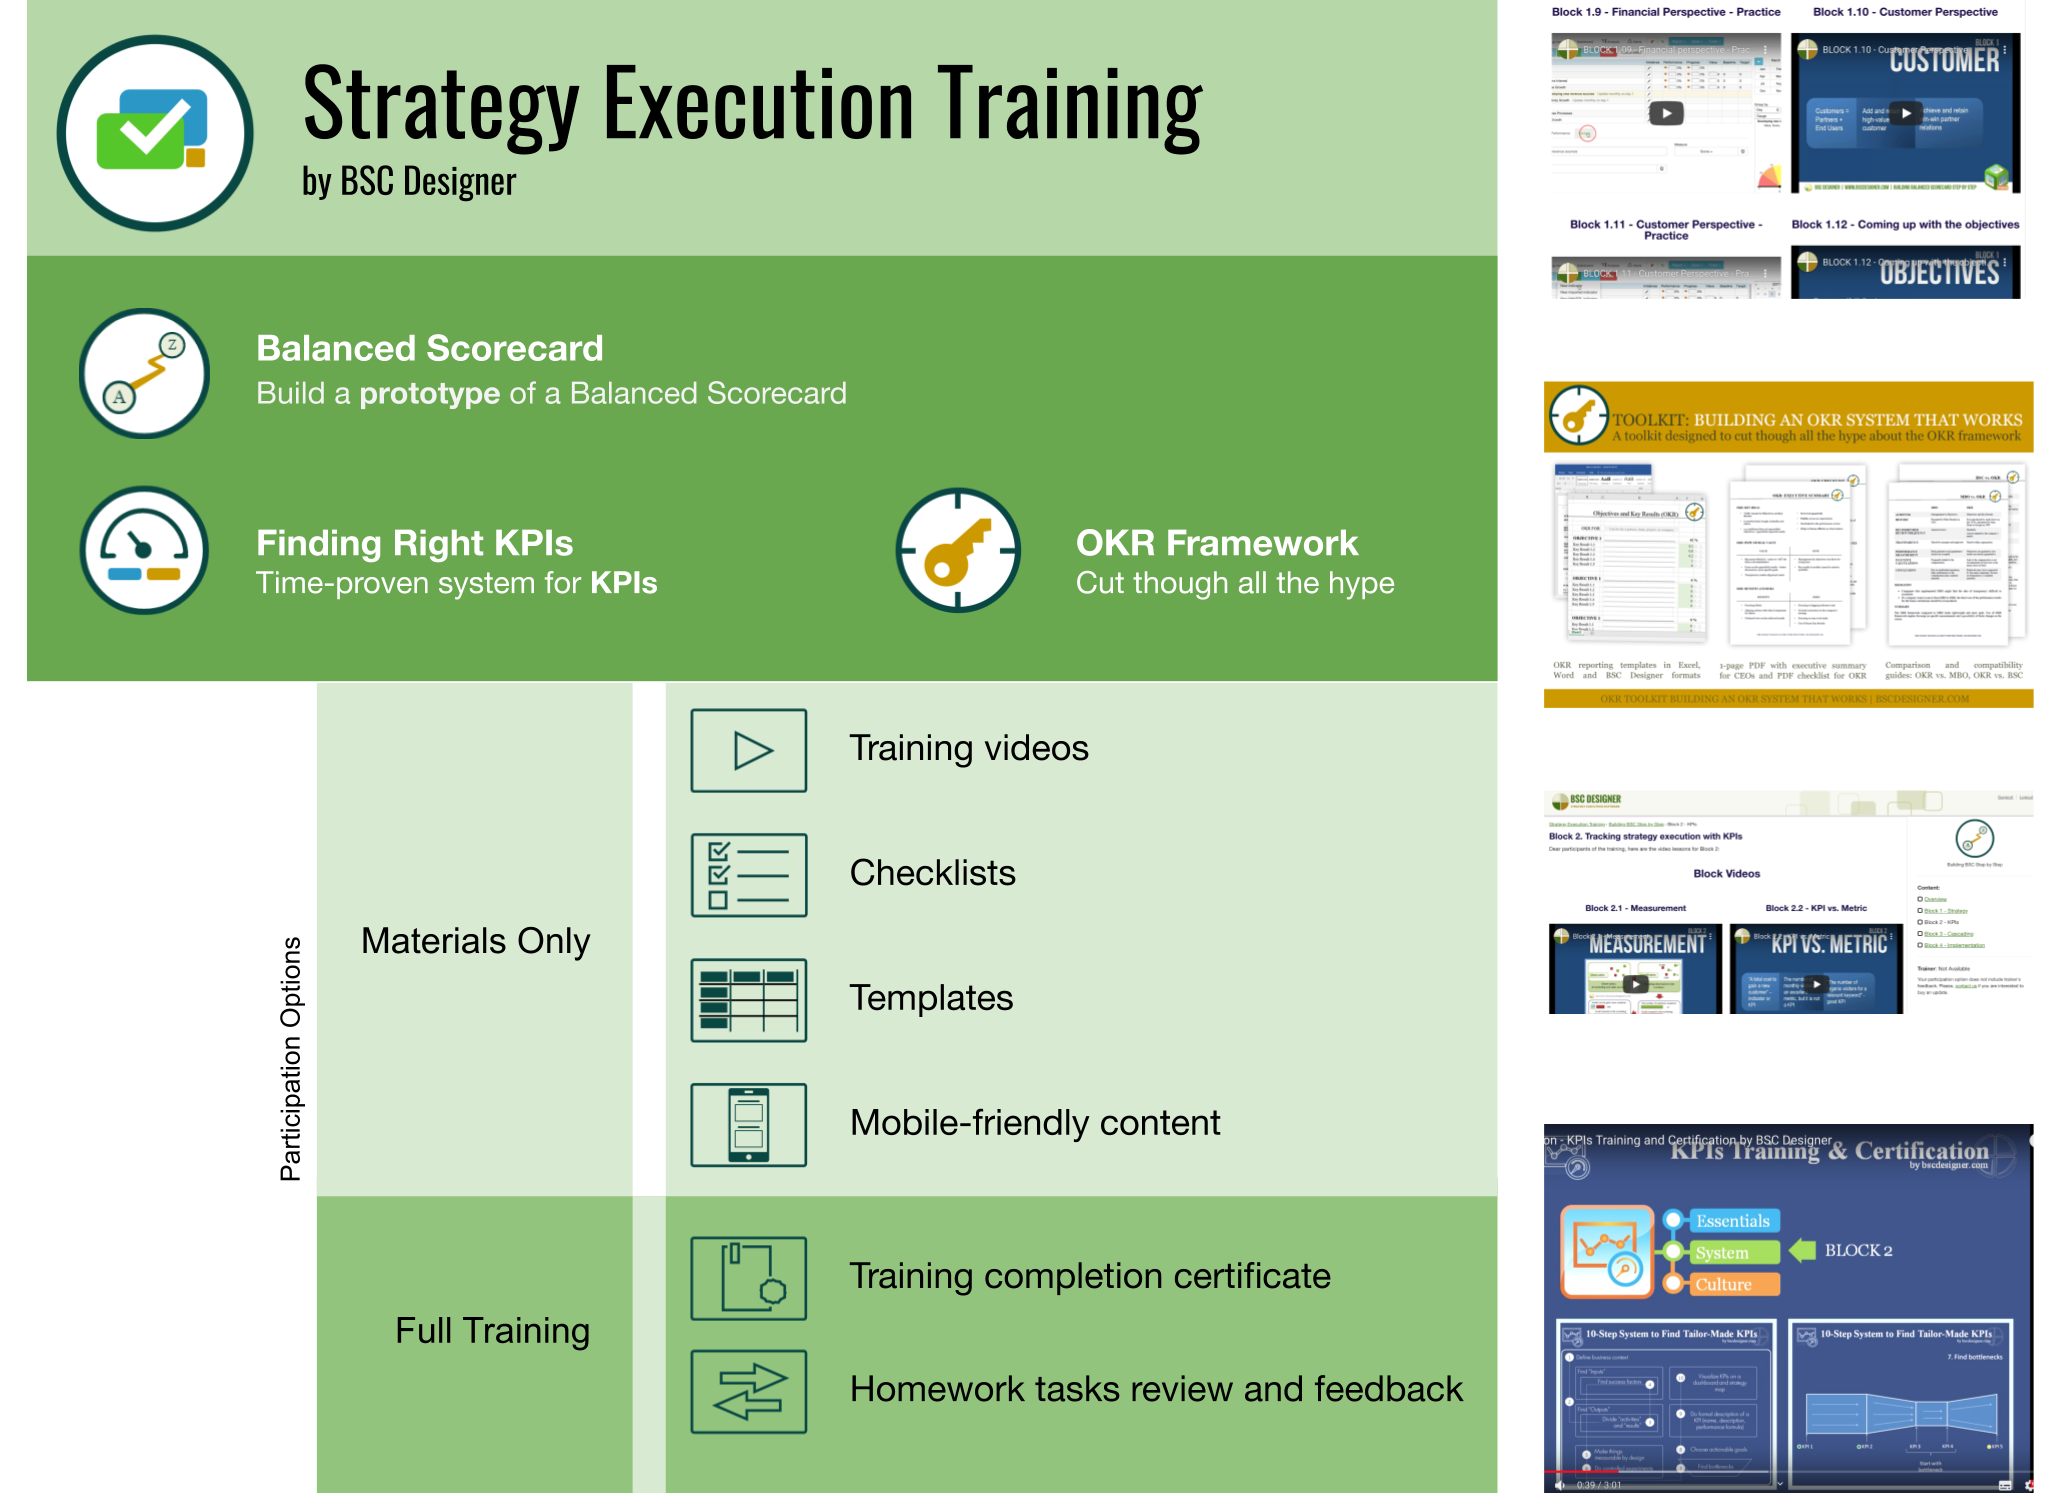 Strategy execution training 5-in-1